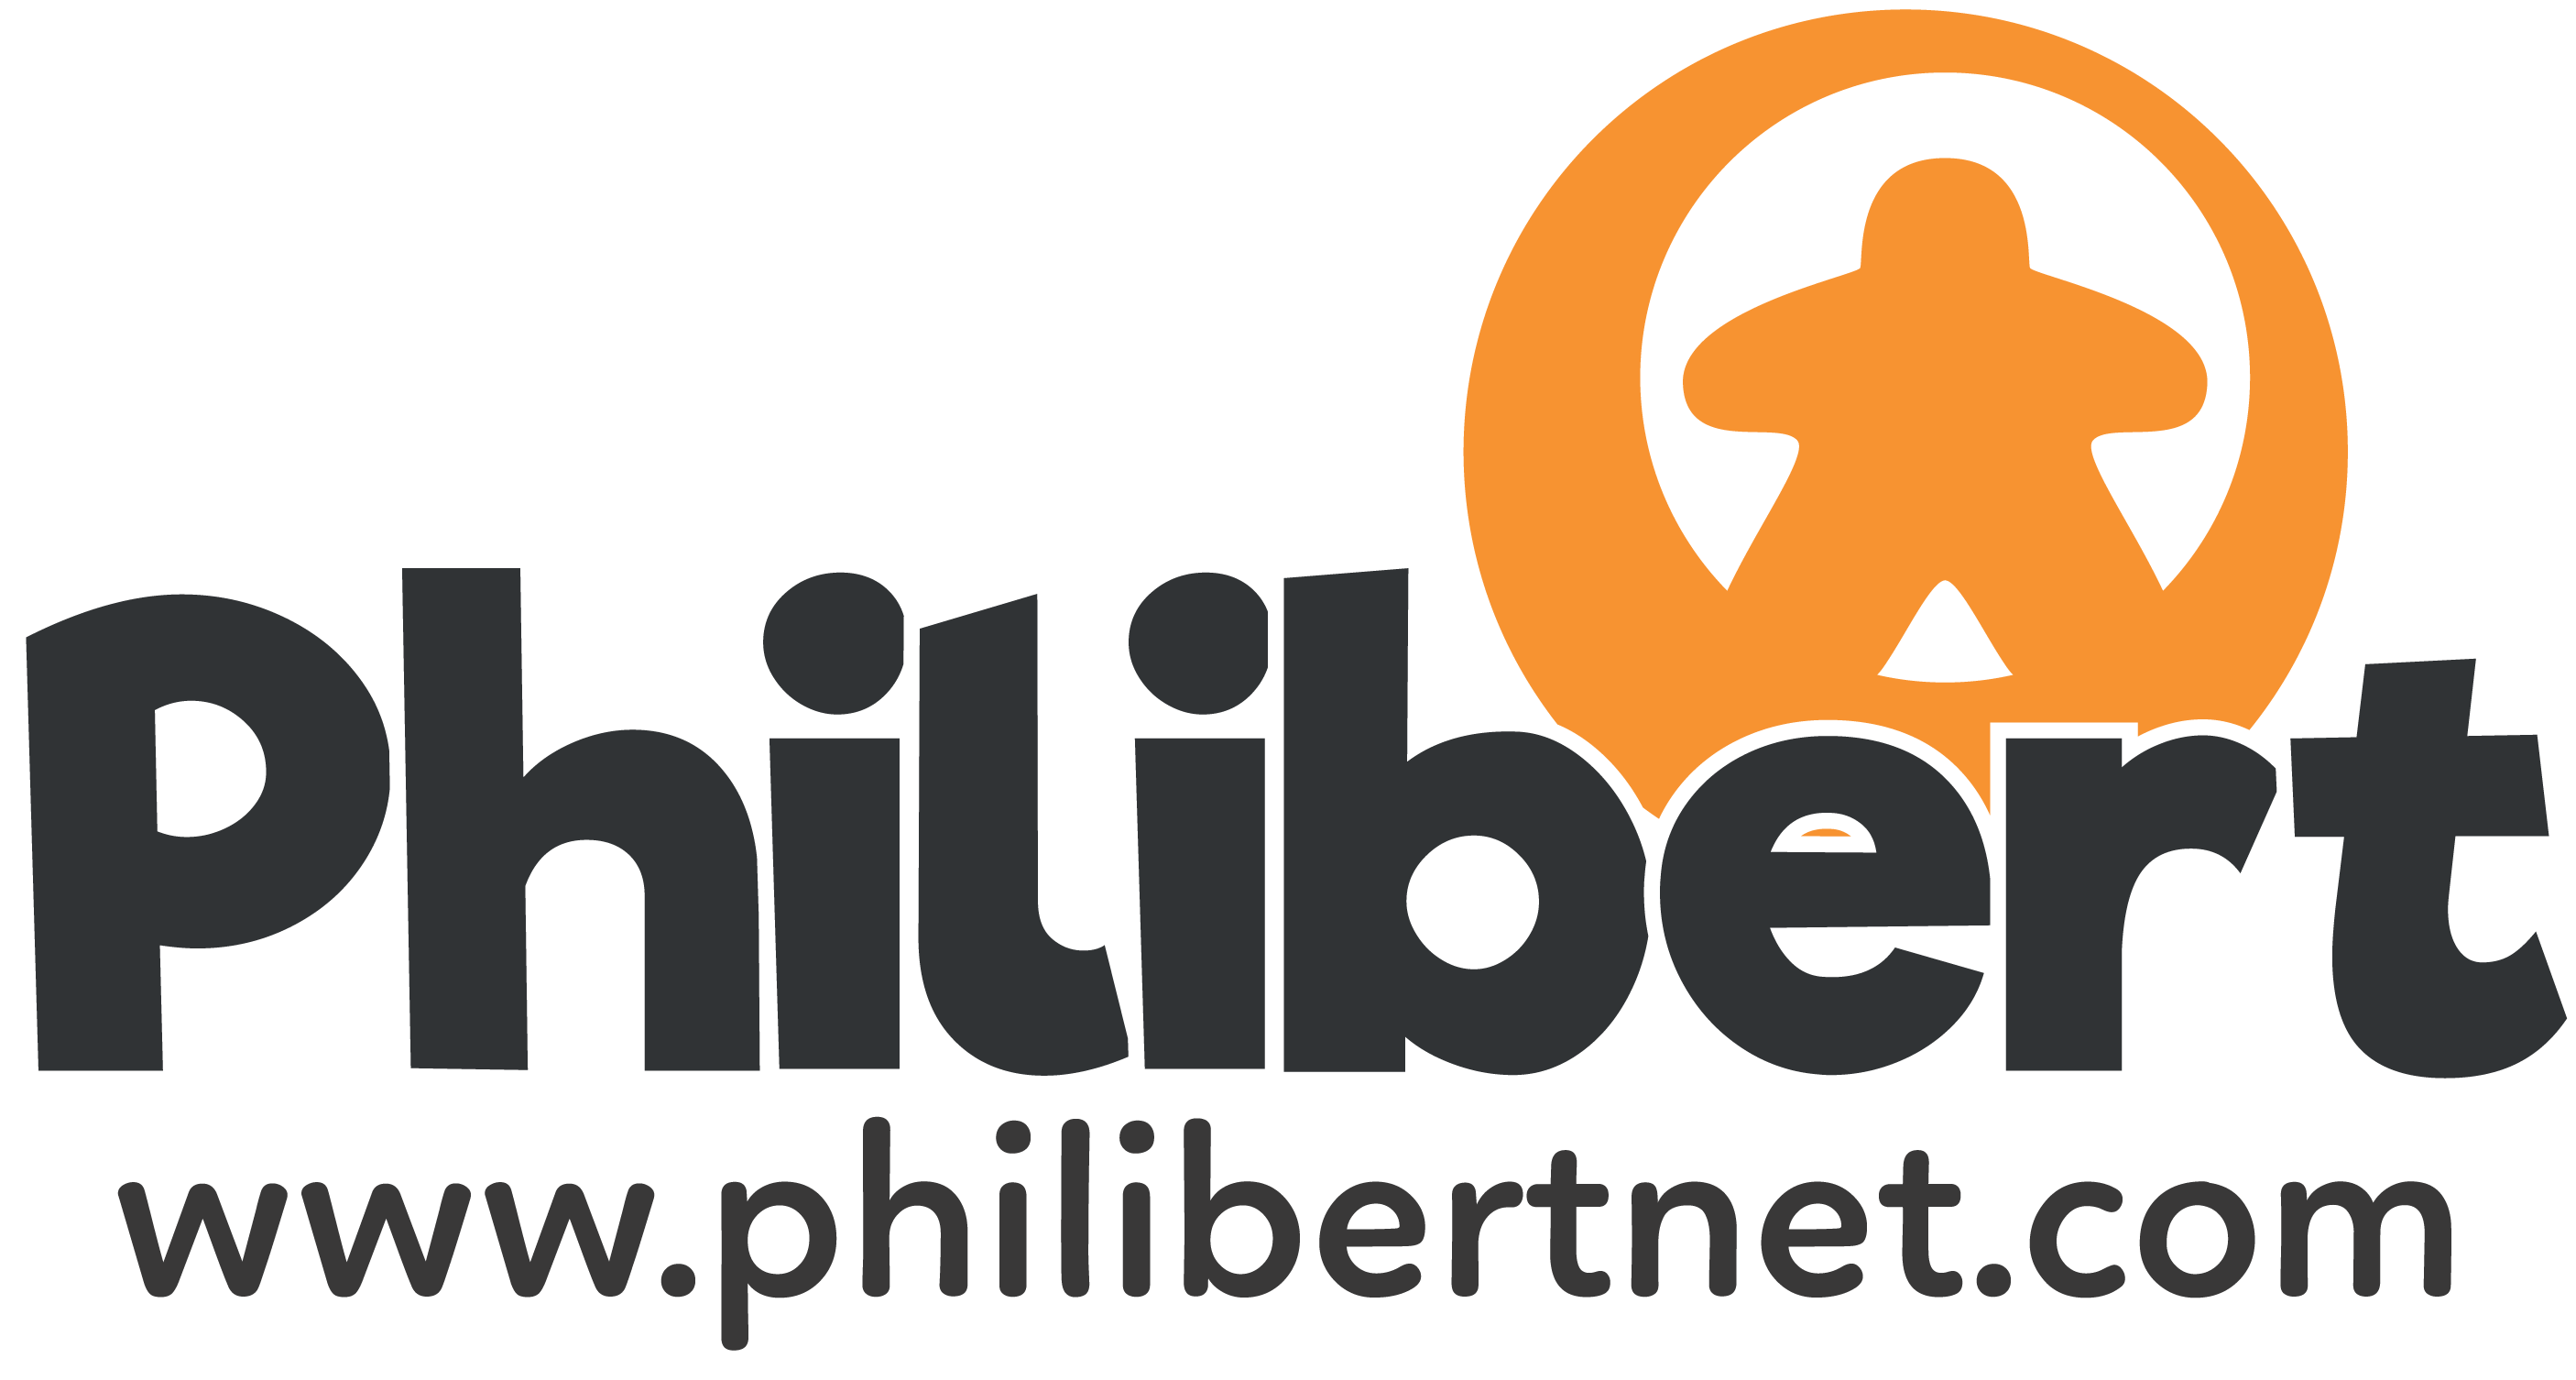 Boutique Philibert